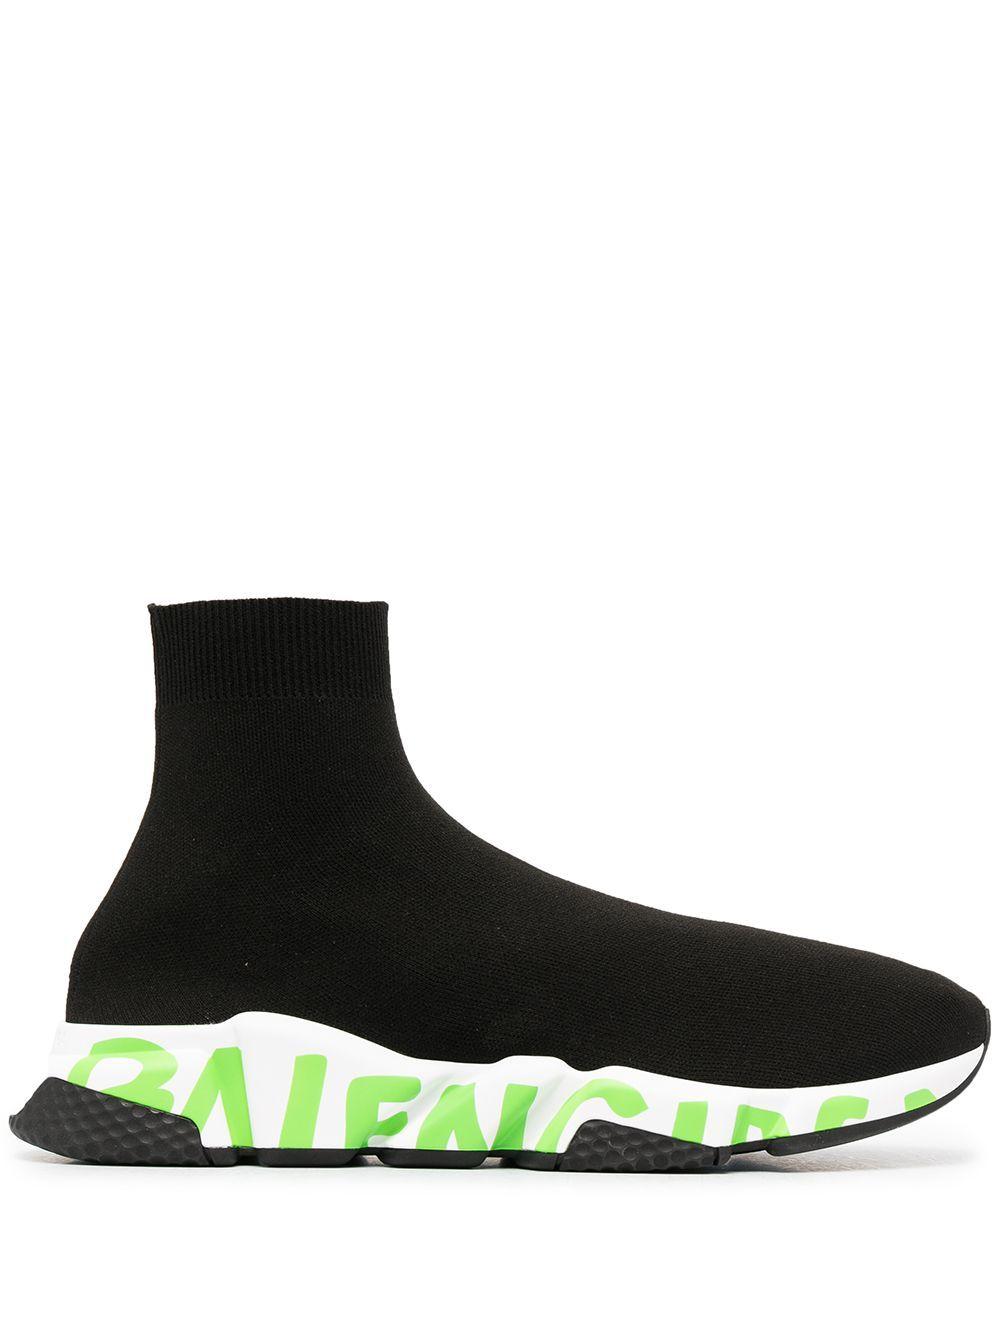 BALENCIAGA Speed Runner Green Graffiti - Maison De Fashion